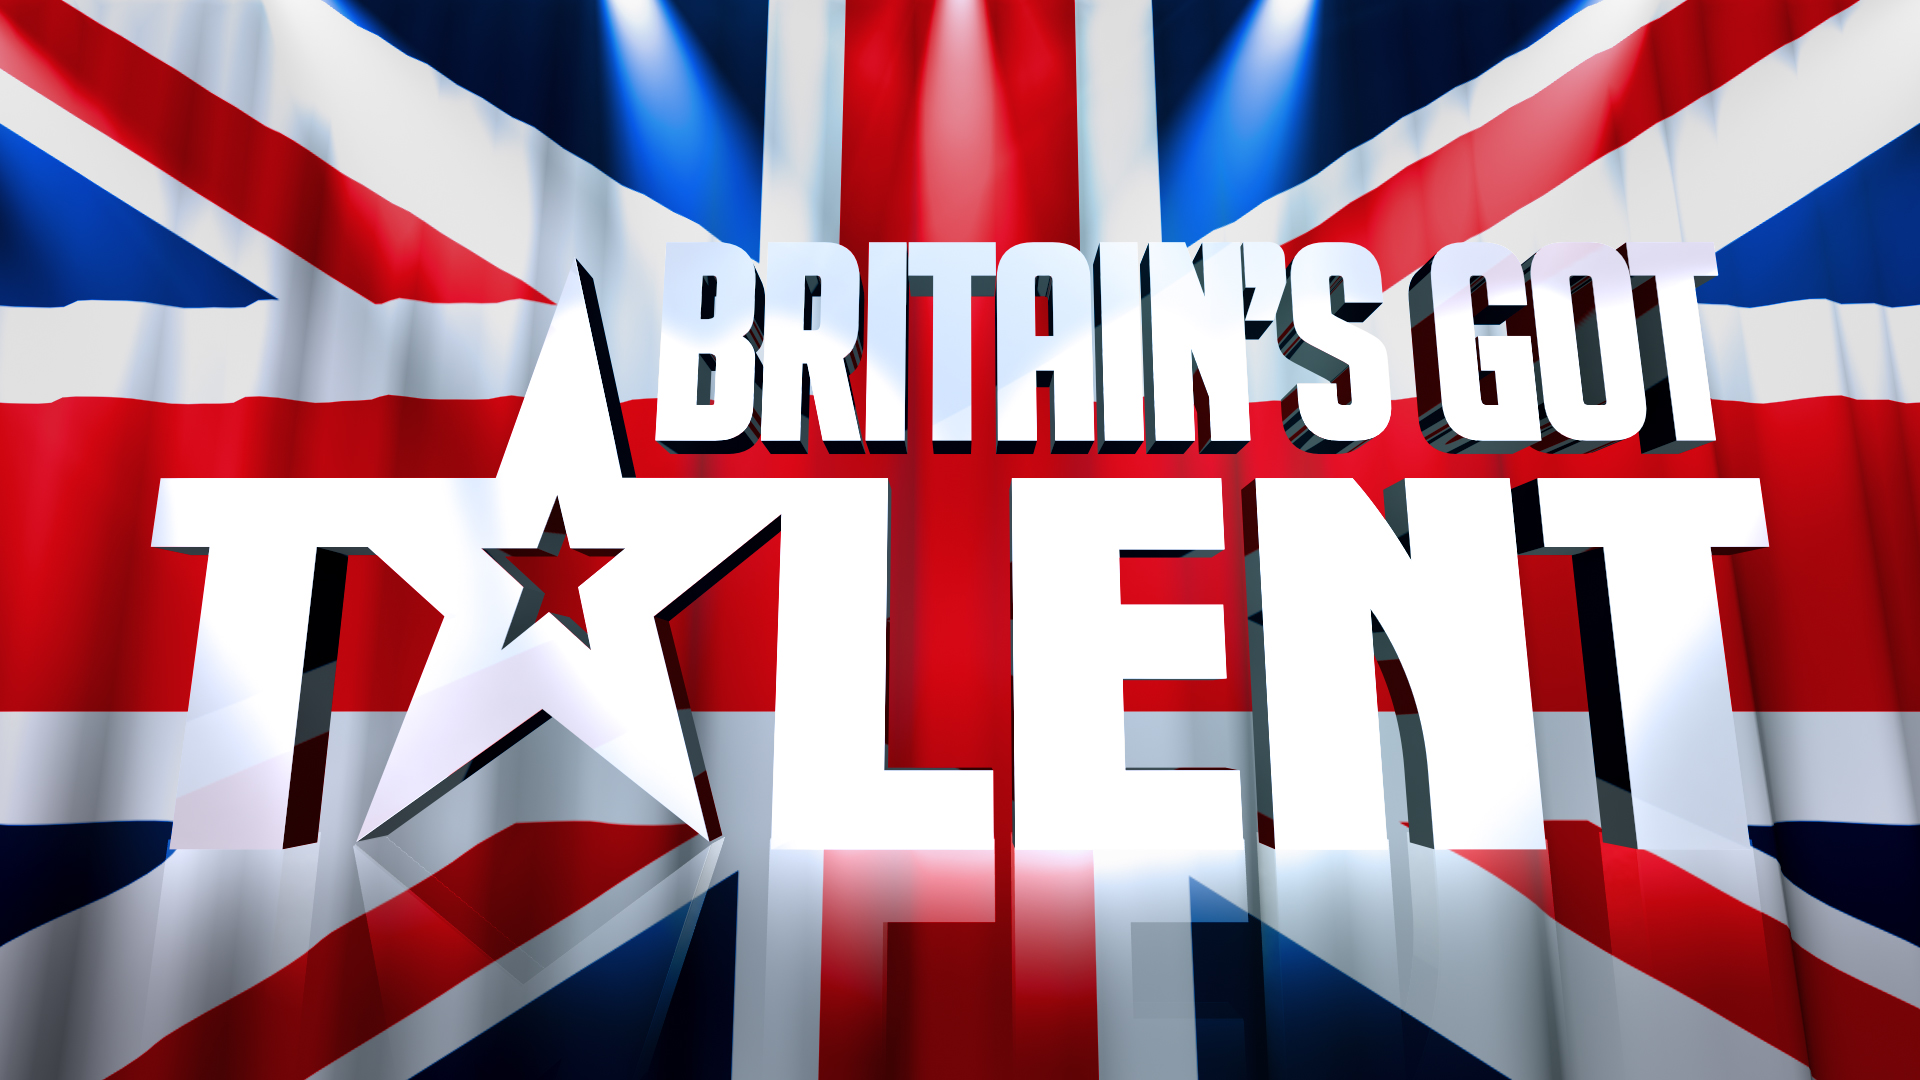 Another Kind of Blue at Britain's Got Talent